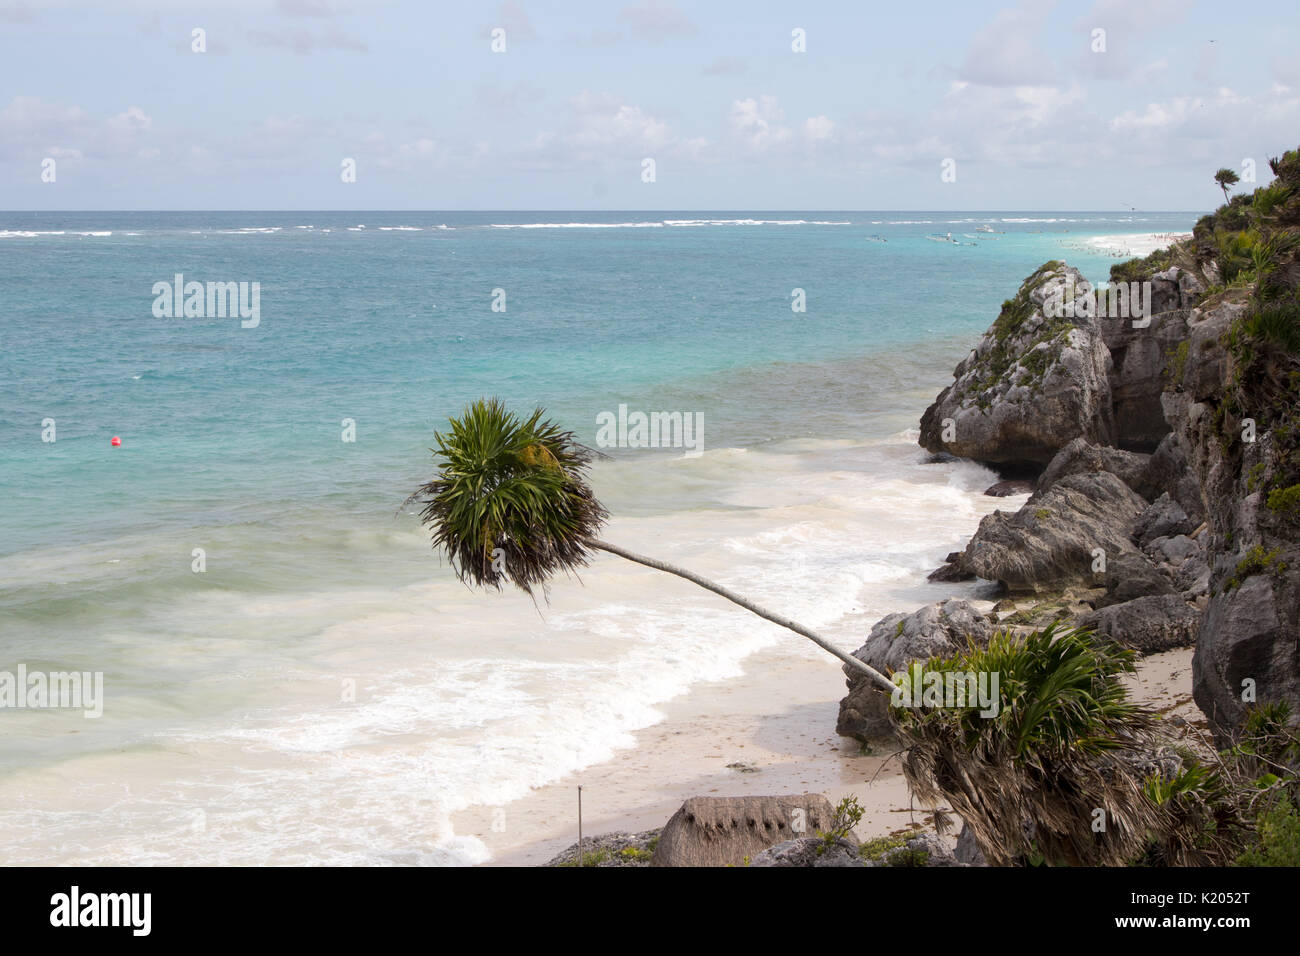 Tropical beach with topaz blue water, leaning palm tree, white sand and rocky cliffs. - Stock Image